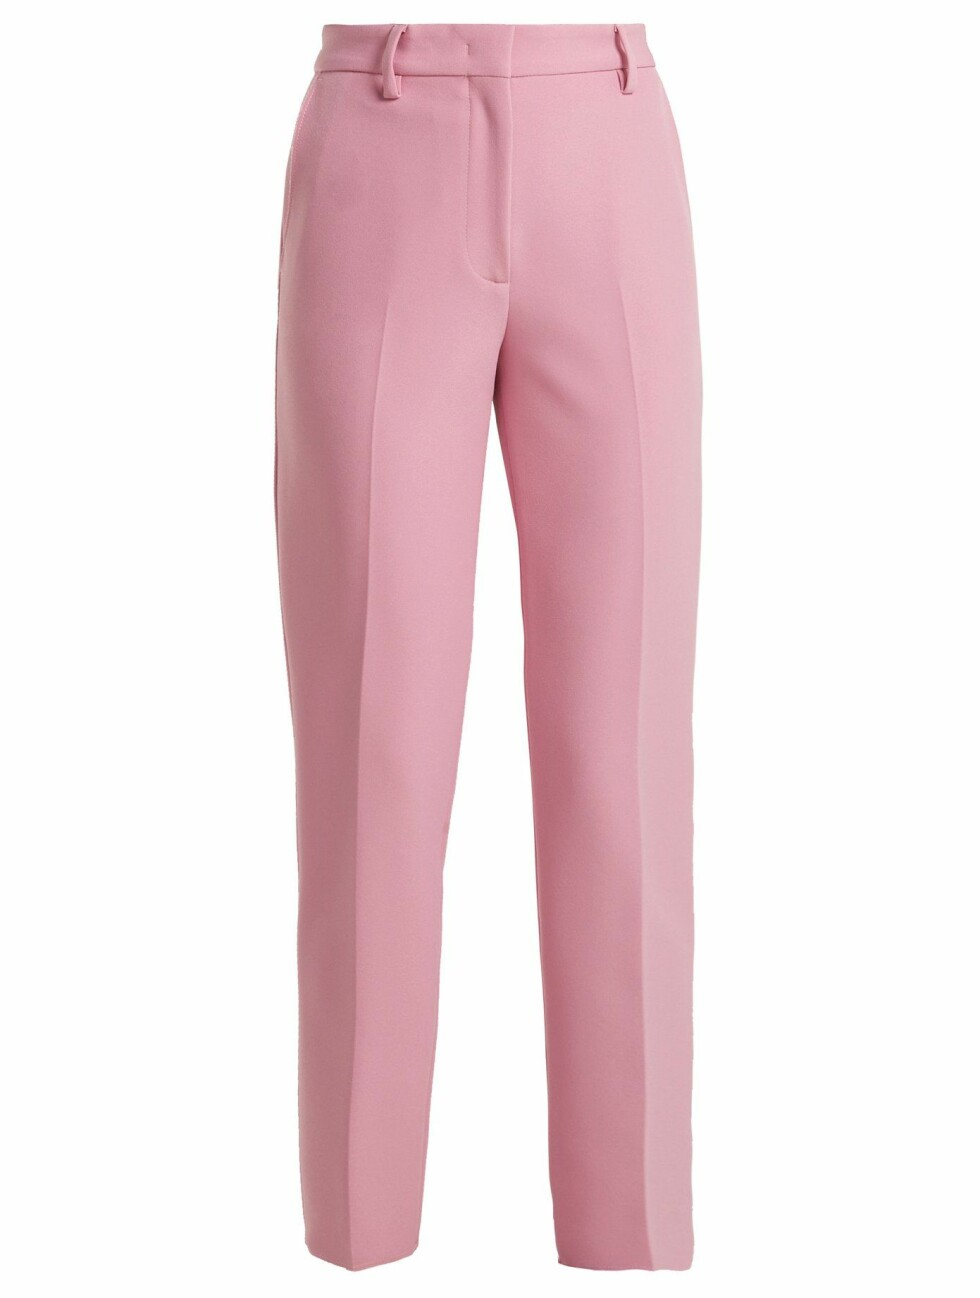 Bukse fra MSGM |1890,-| https://www.matchesfashion.com/intl/products/MSGM-Mid-rise-crepe-trousers--1209802